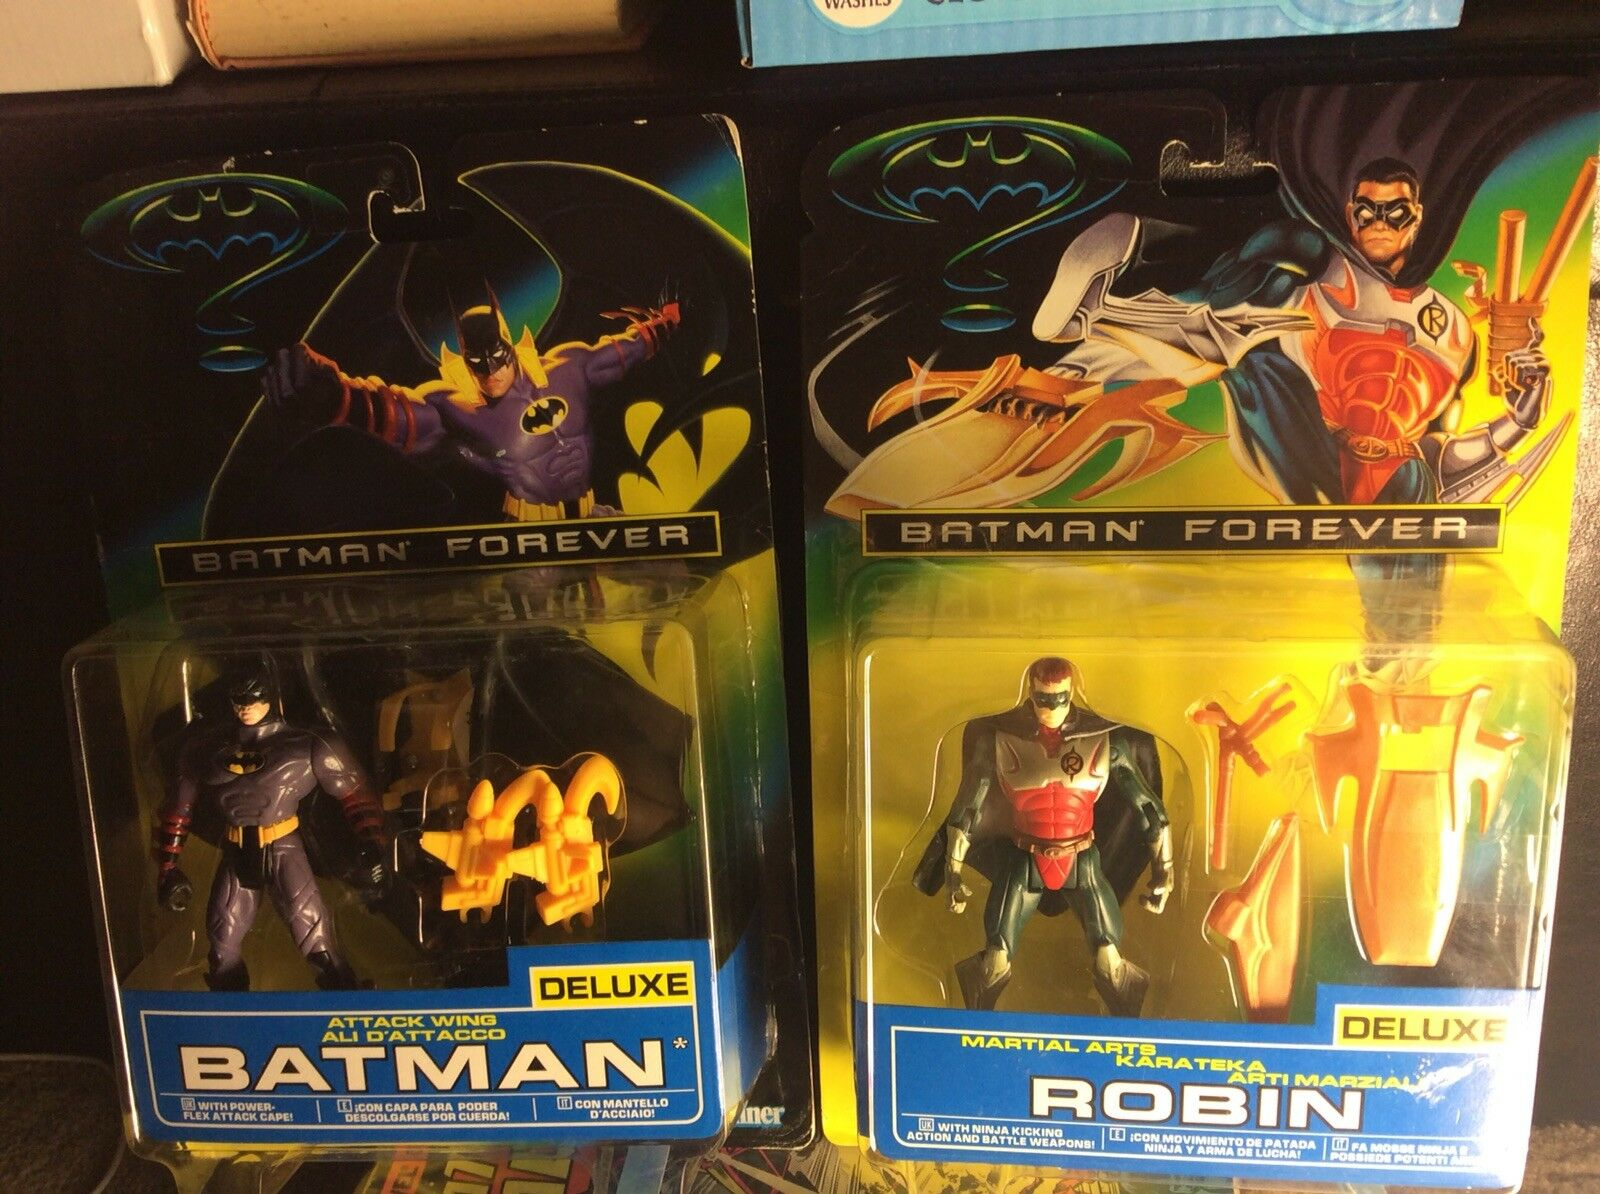 2 1995 Kenner Batman Forever Delux Figures Batman And Robin Duo Listing